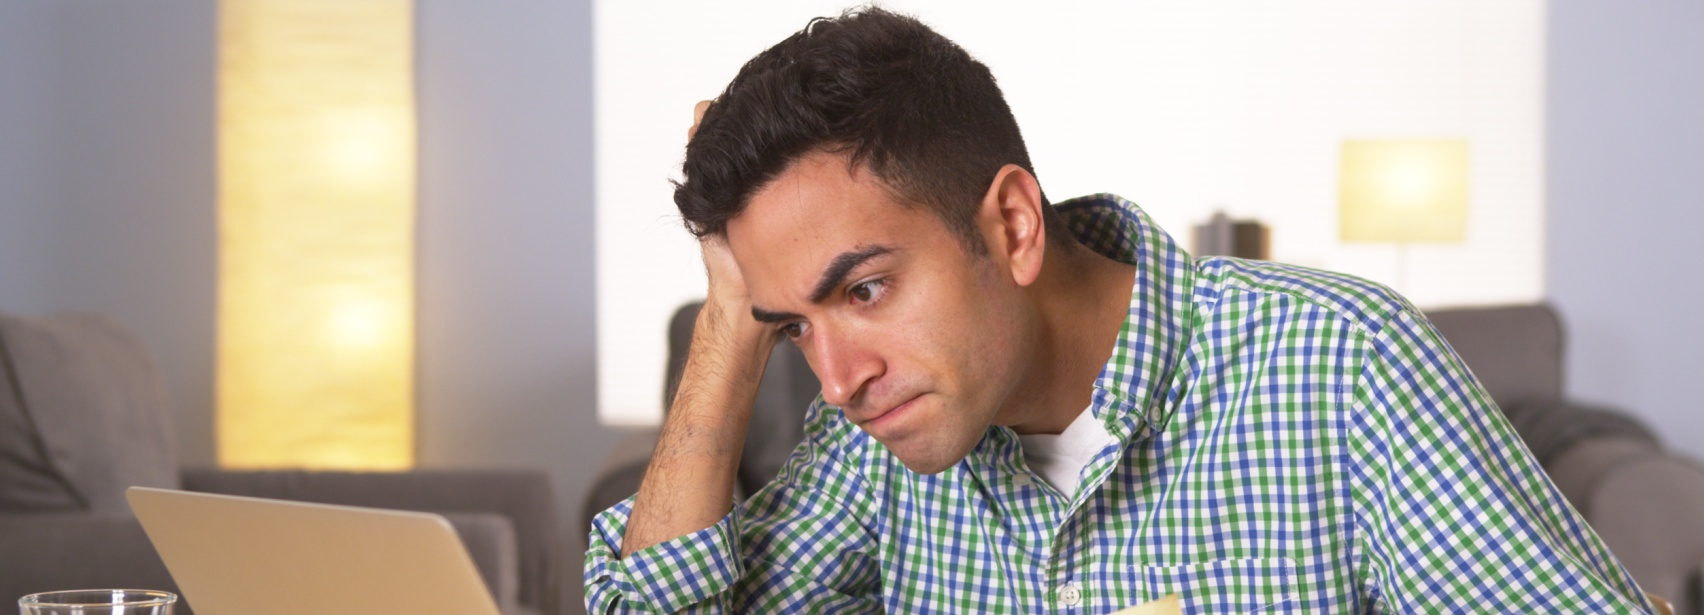 Emotional Impact of Poor Sleep: man frustrated from lack of sleep